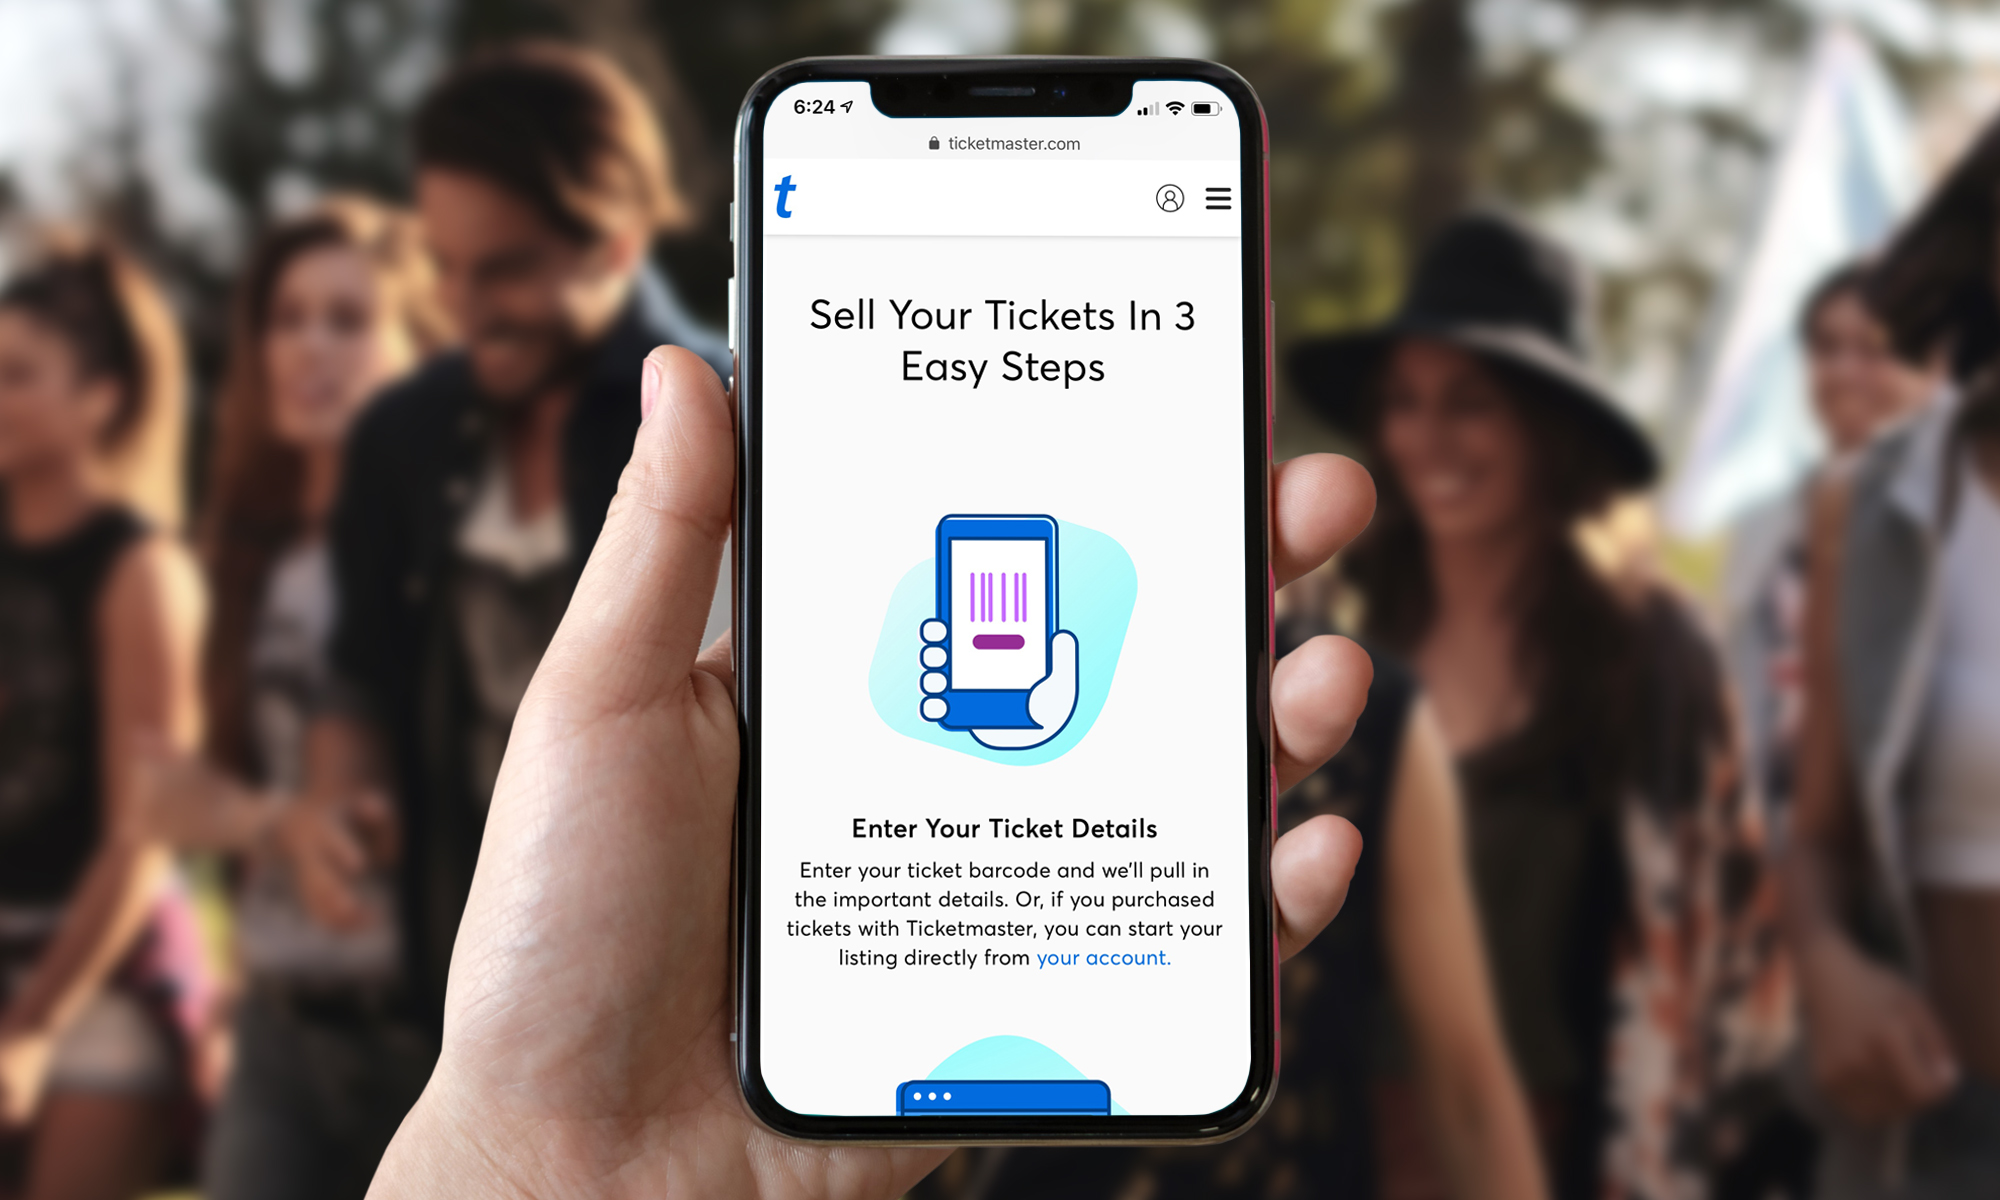 Selling Your Tickets on Ticketmaster | Ticketmaster Blog